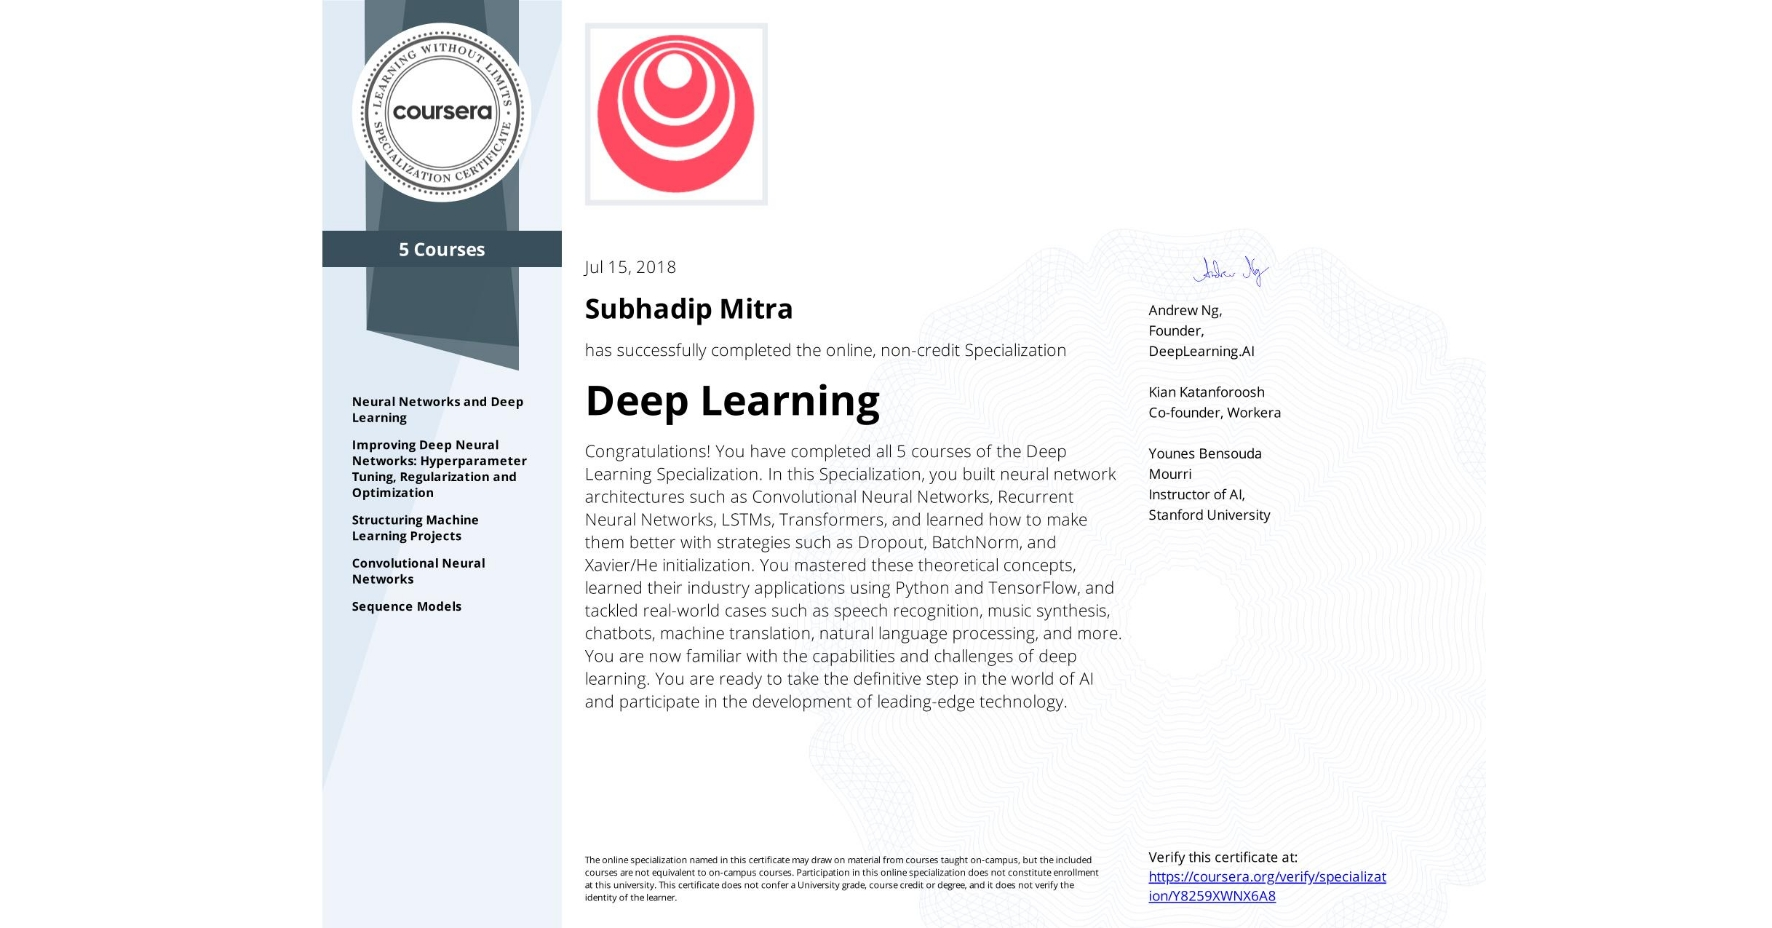 View certificate for Subhadip Mitra, Deep Learning, offered through Coursera. Congratulations! You have completed all 5 courses of the Deep Learning Specialization.  In this Specialization, you built neural network architectures such as Convolutional Neural Networks, Recurrent Neural Networks, LSTMs, Transformers, and learned how to make them better with strategies such as Dropout, BatchNorm, and Xavier/He initialization. You mastered these theoretical concepts, learned their industry applications using Python and TensorFlow, and tackled real-world cases such as speech recognition, music synthesis, chatbots, machine translation, natural language processing, and more.  You are now familiar with the capabilities and challenges of deep learning. You are ready to take the definitive step in the world of AI and participate in the development of leading-edge technology.